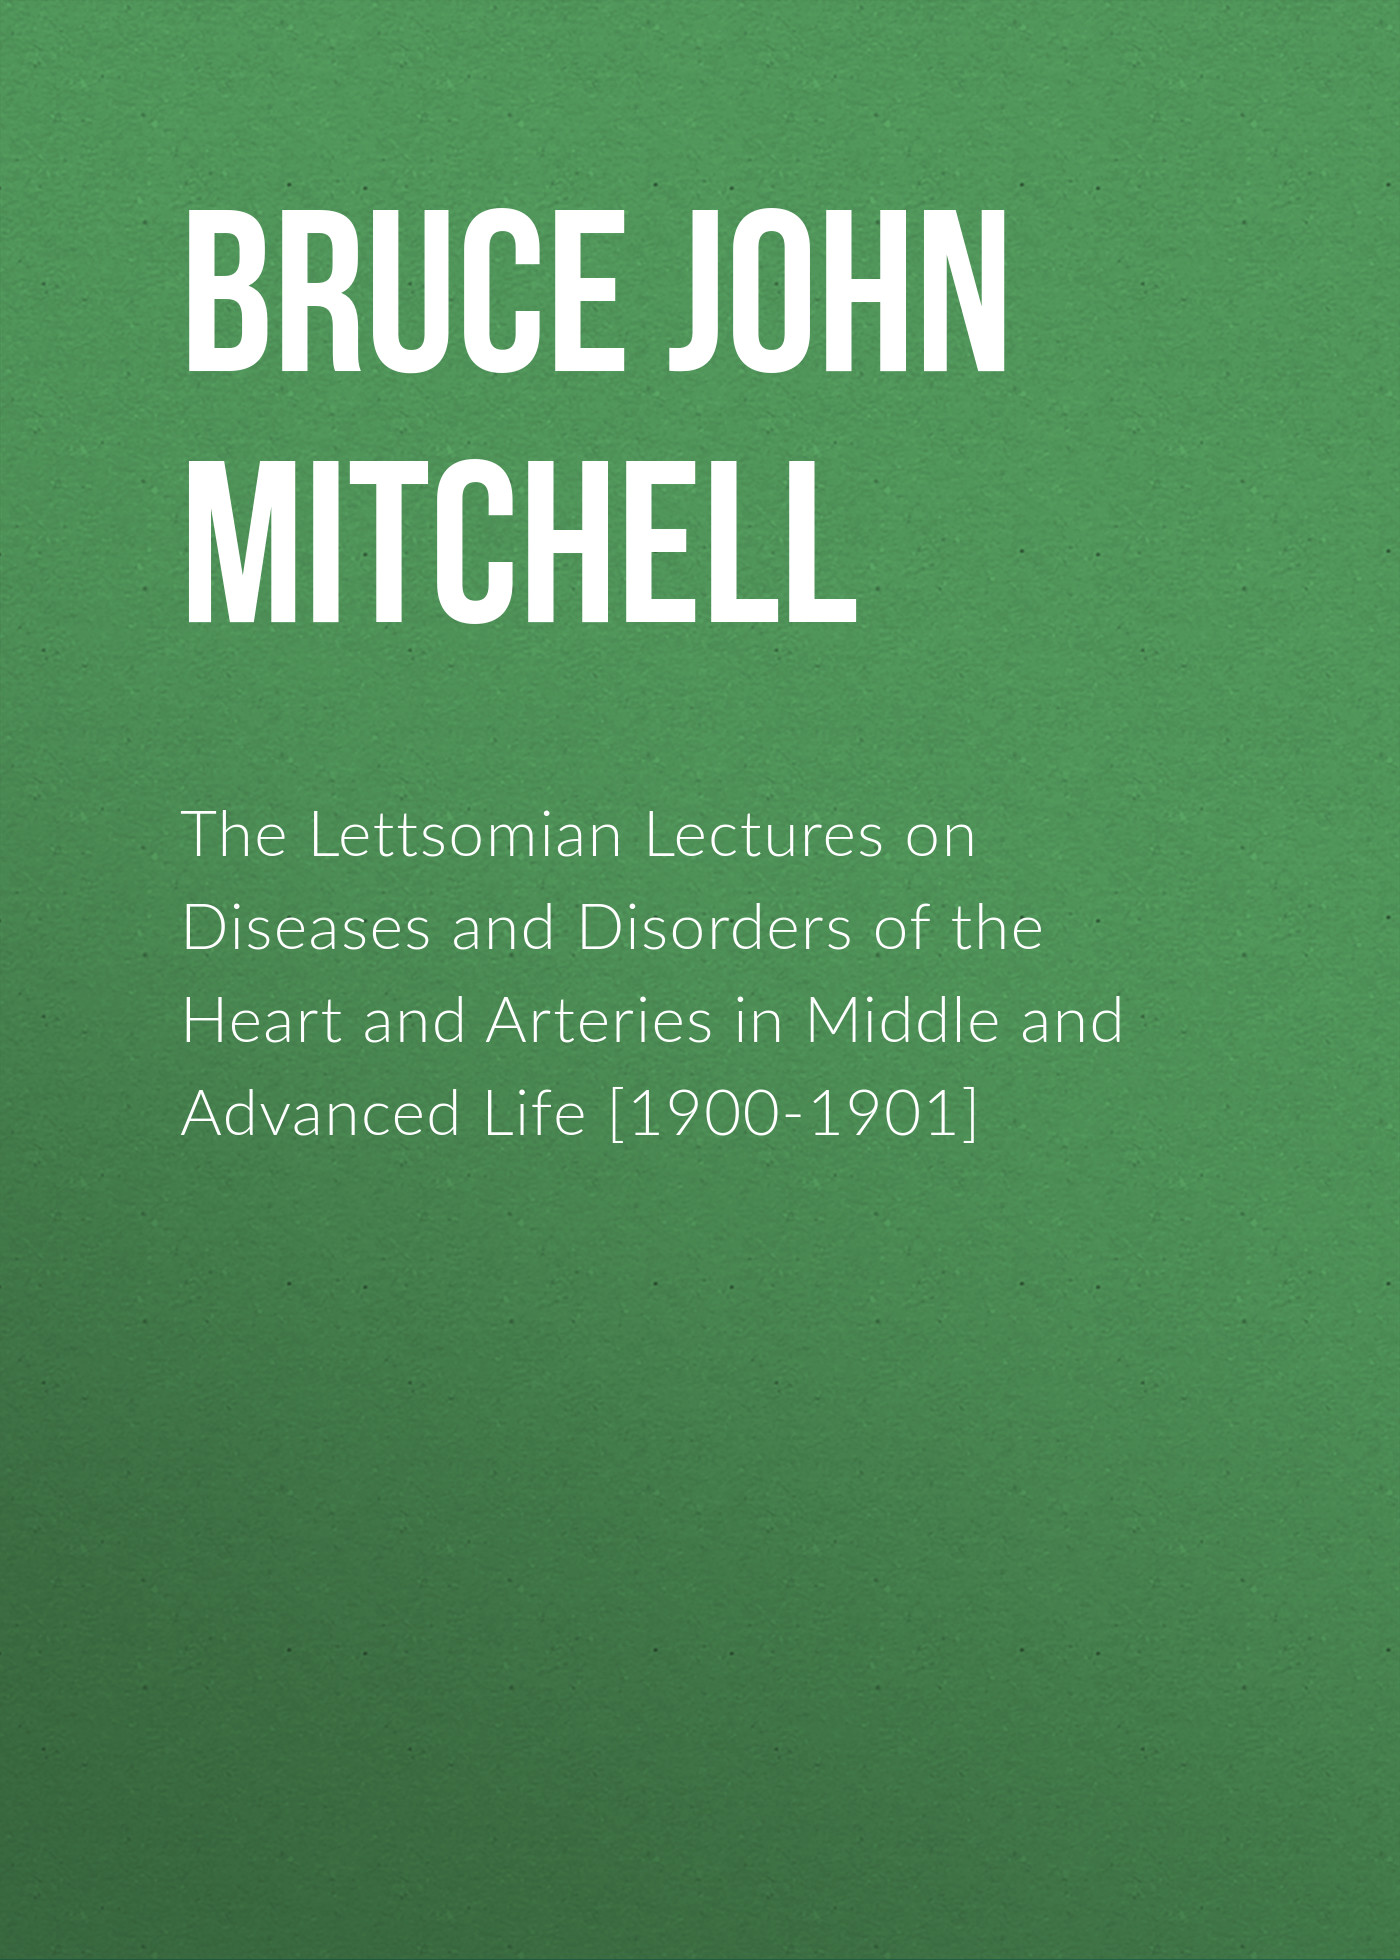 Bruce John Mitchell The Lettsomian Lectures on Diseases and Disorders of the Heart and Arteries in Middle and Advanced Life [1900-1901]